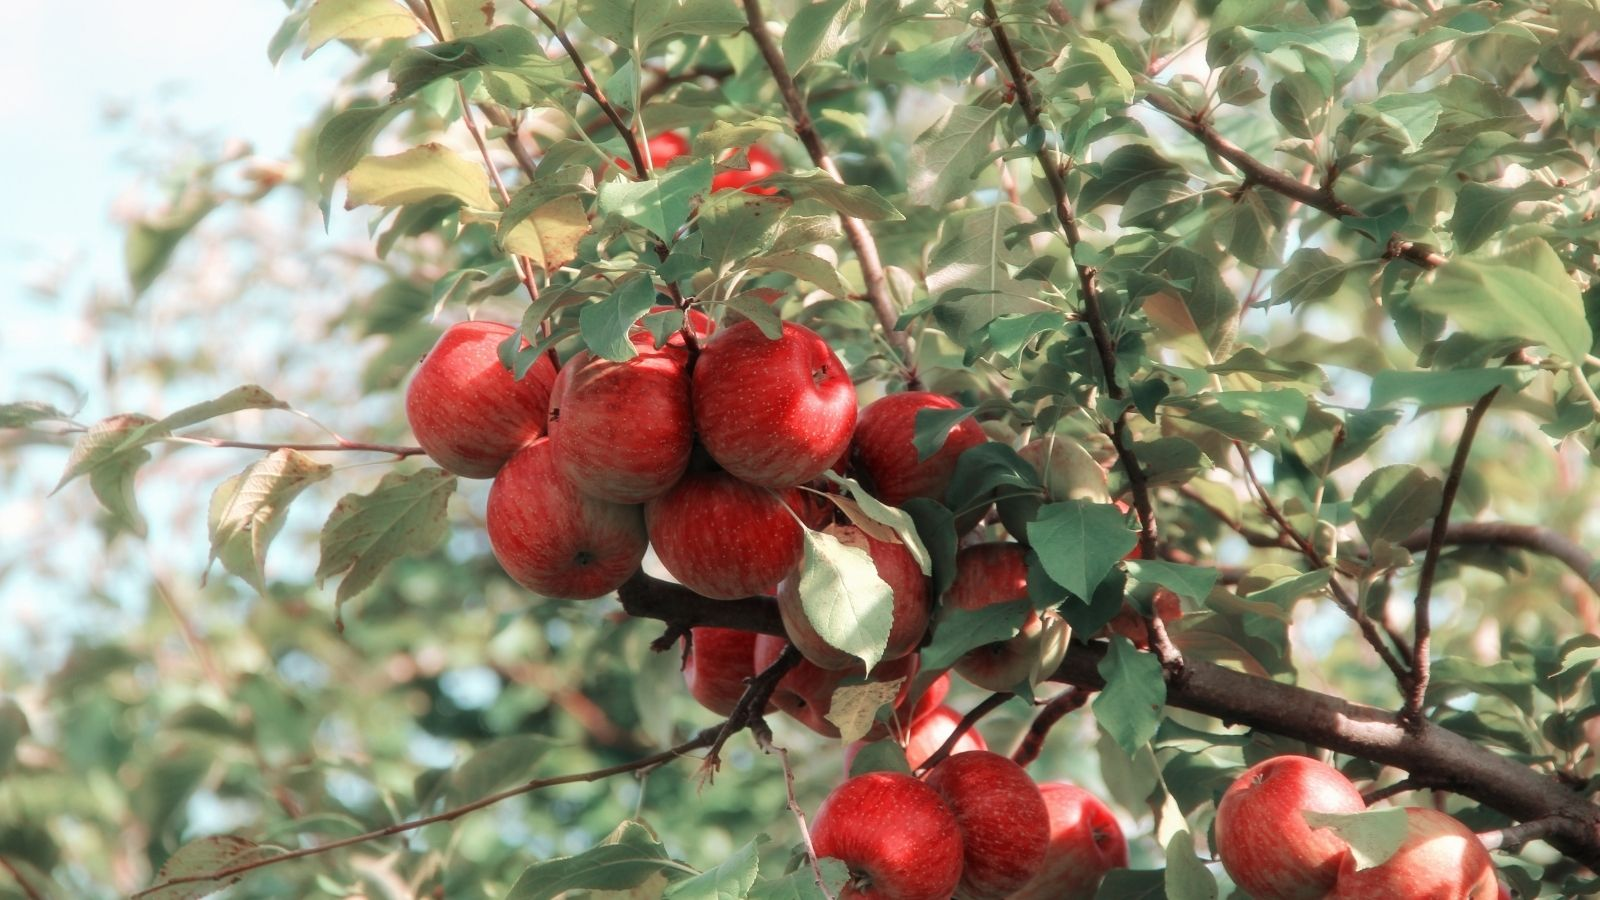 Close-up of red apple trees on branch